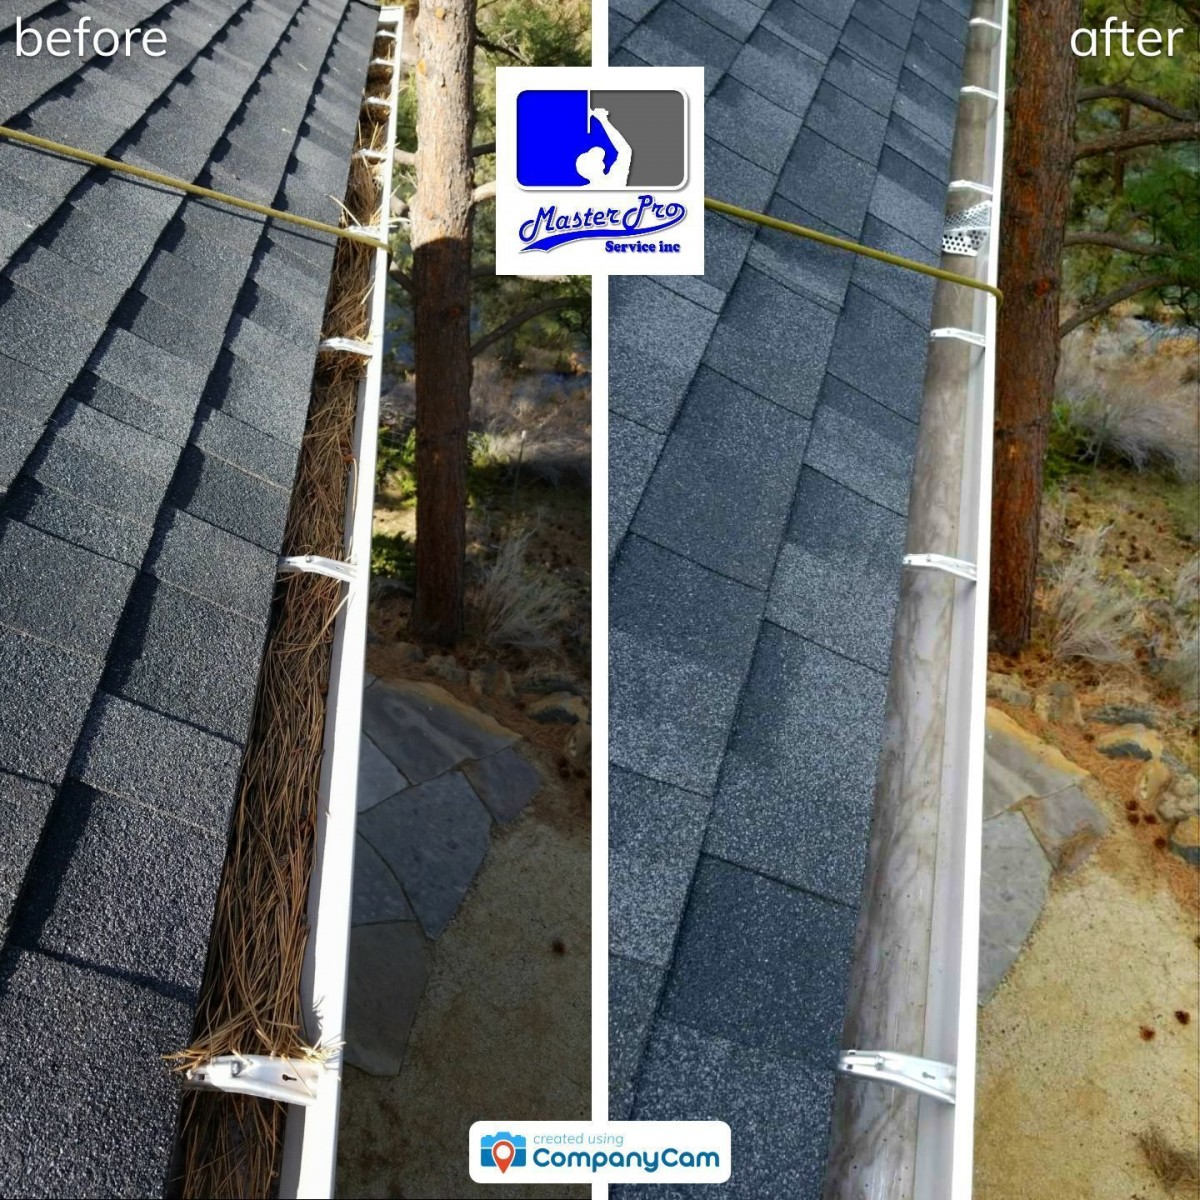 Before and after gutter cleaning in Bend, Oregon